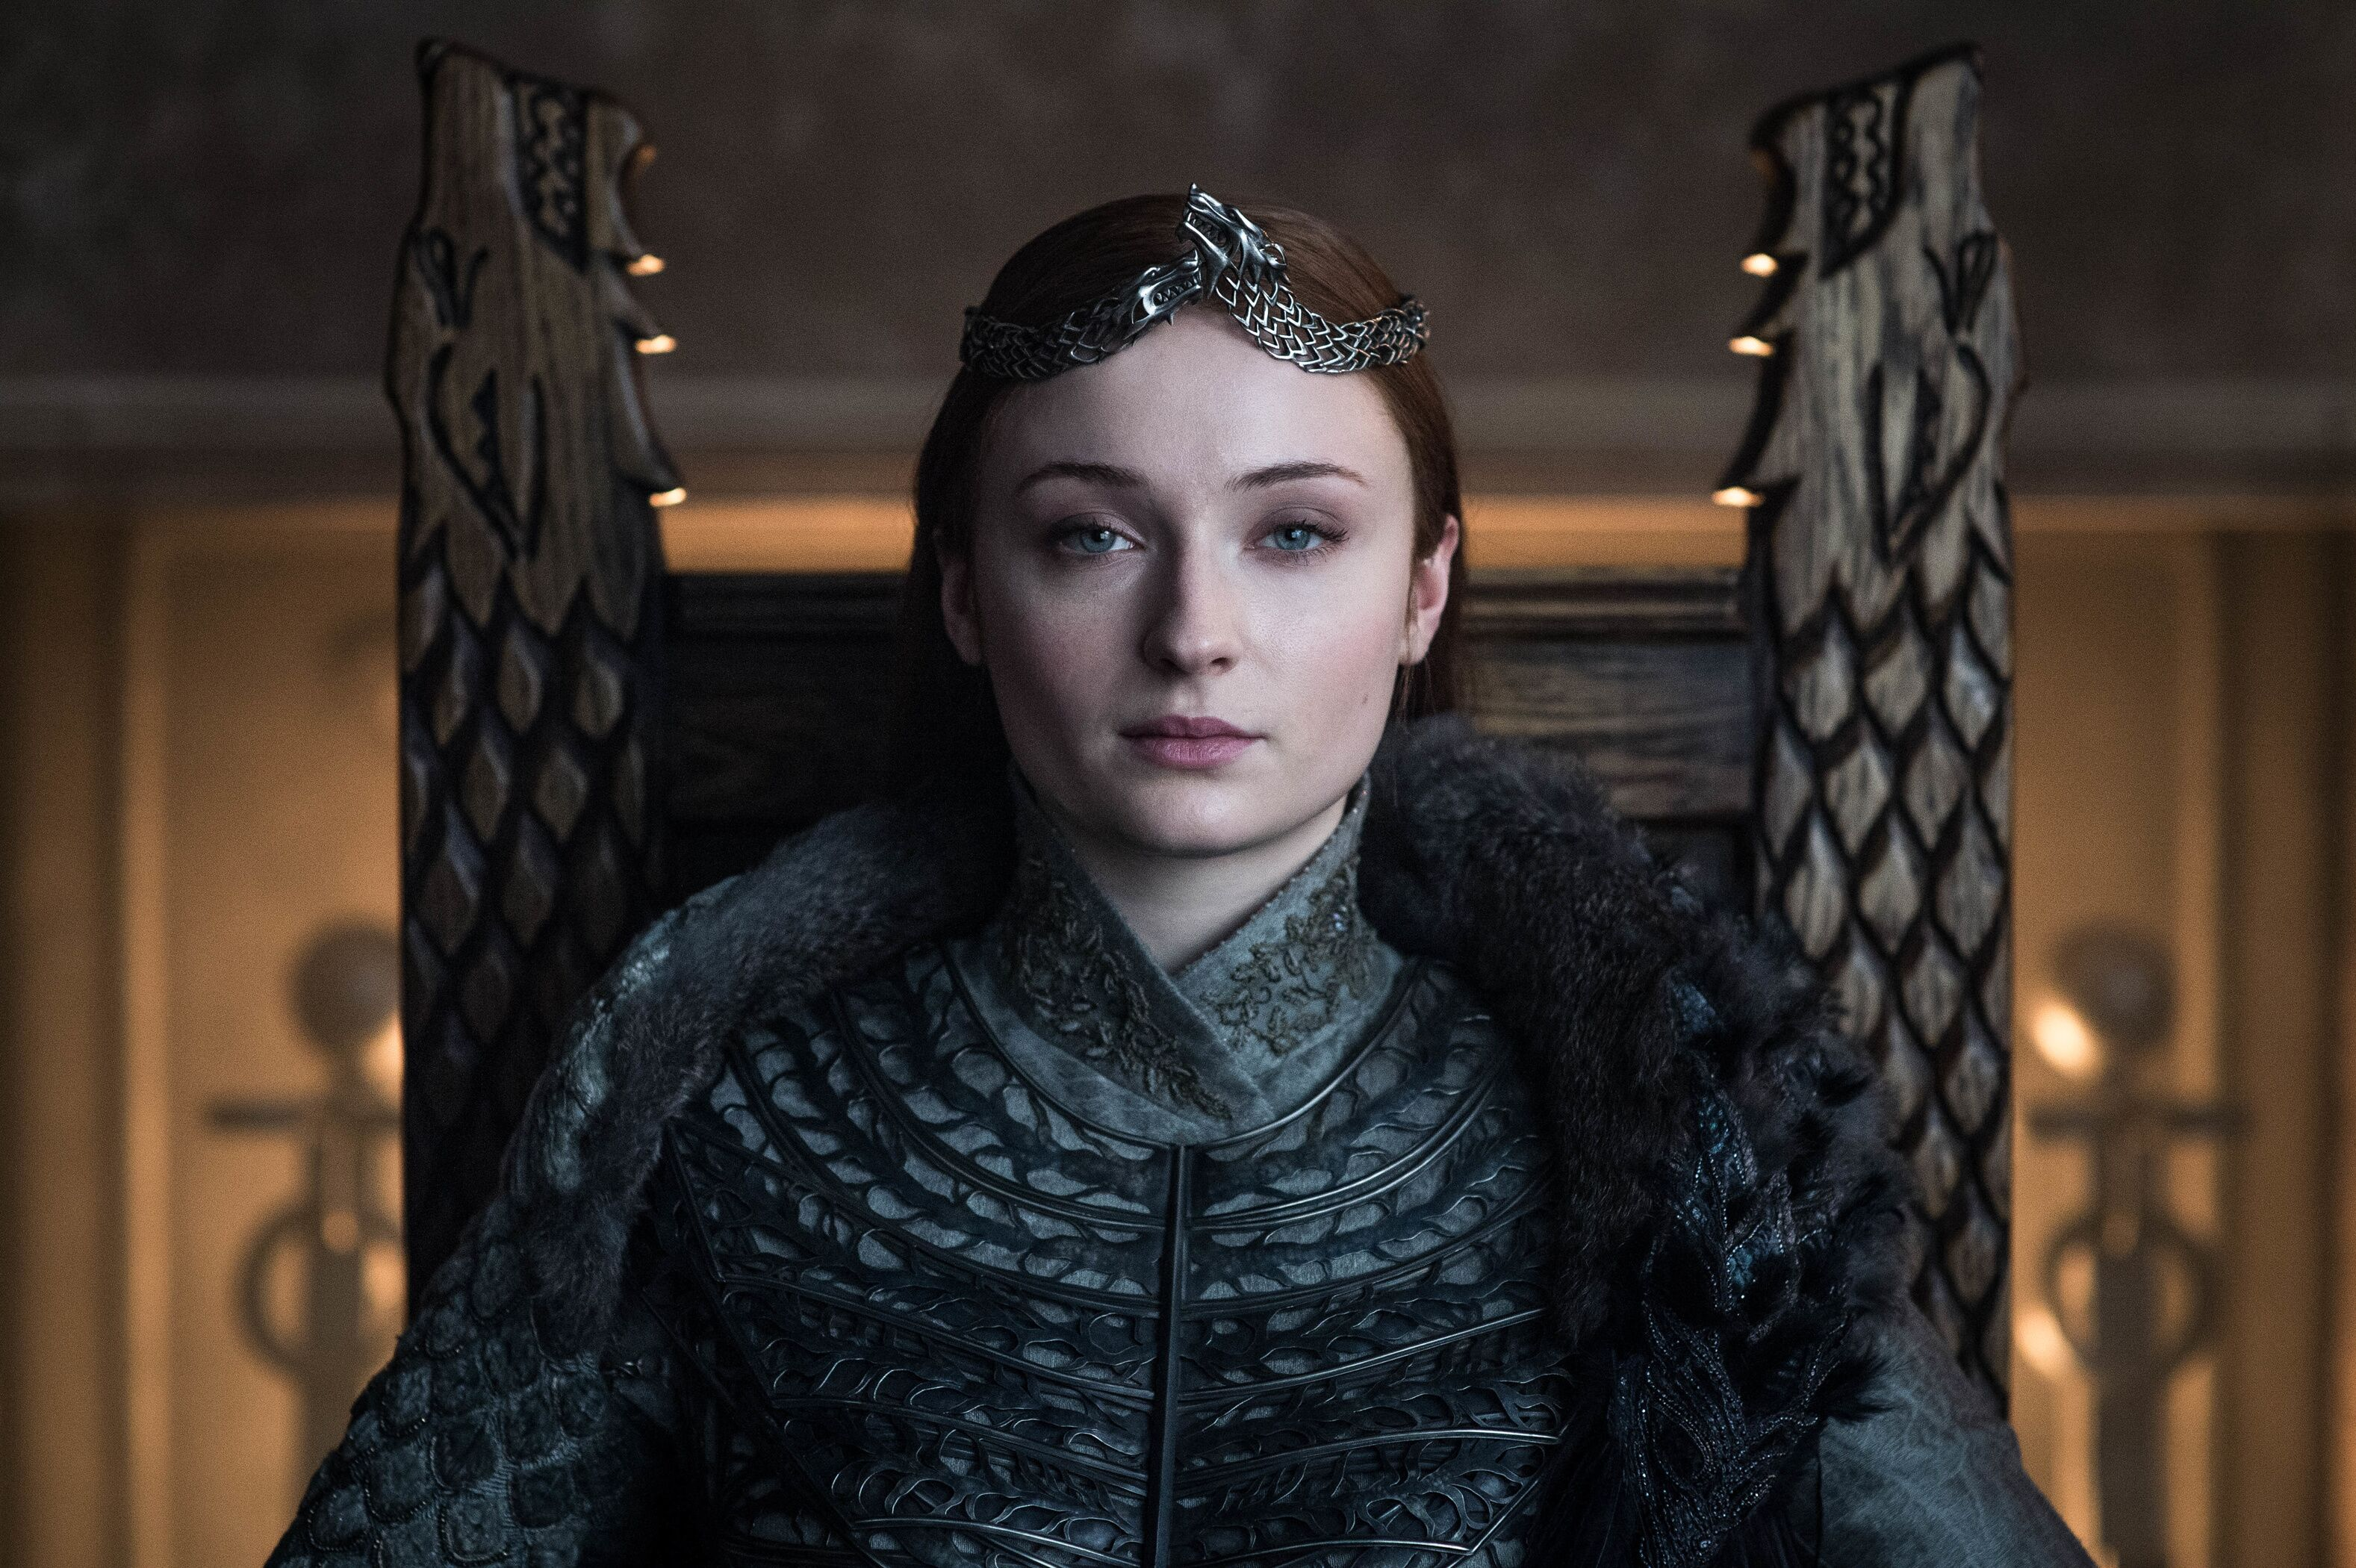 Sophie Turner explains why Sansa didn't want the Iron Throne